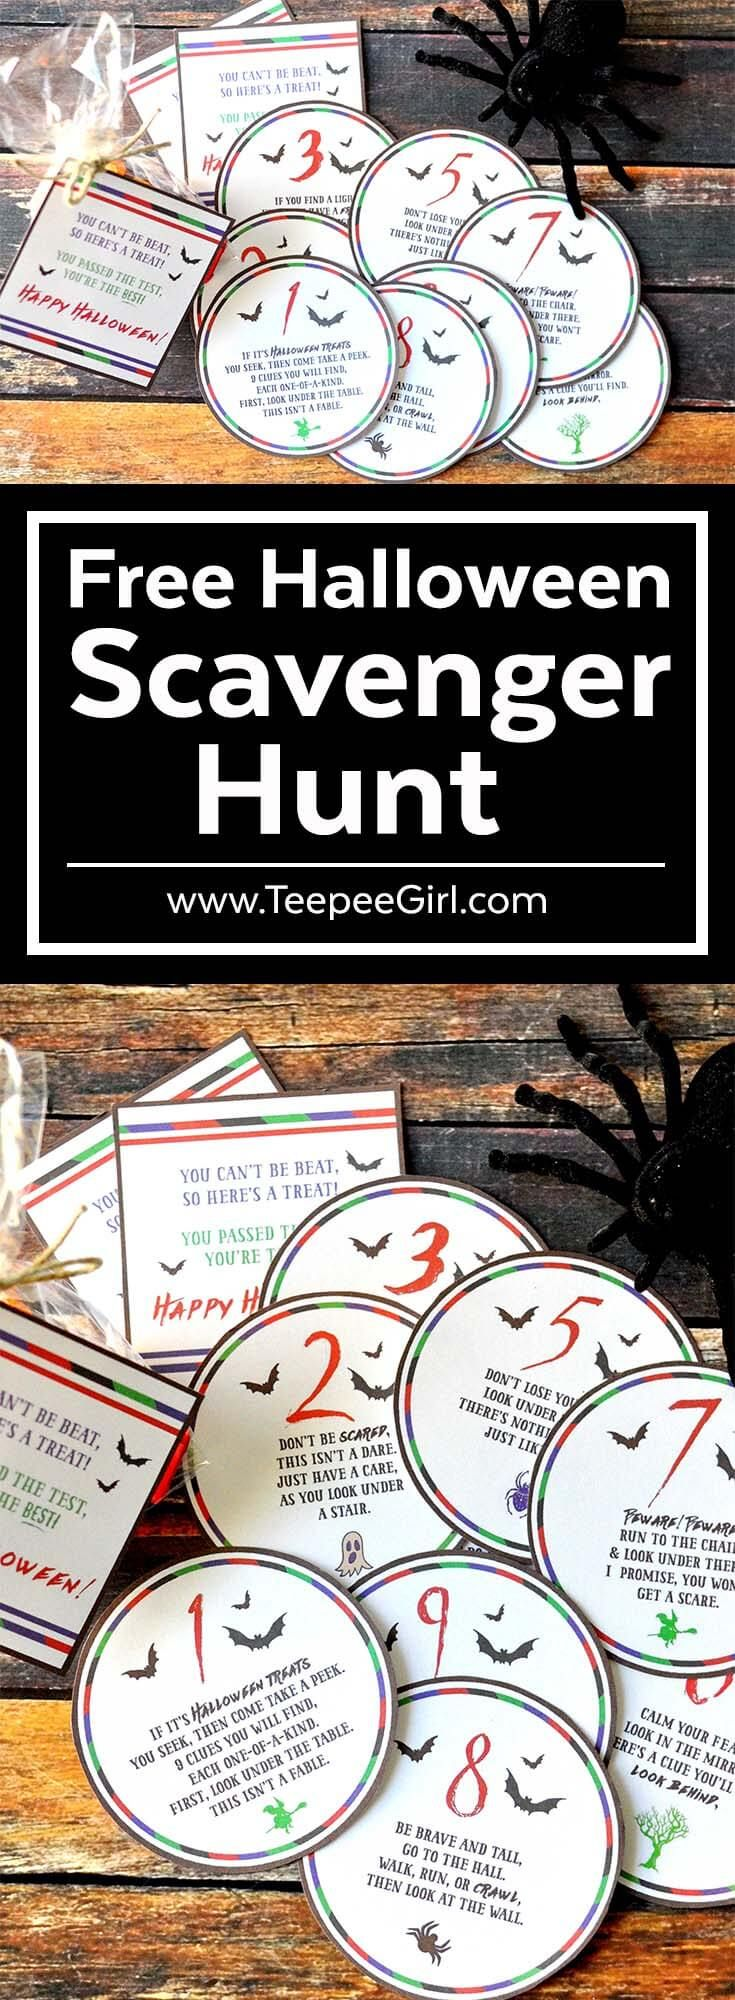 Free Halloween Scavenger Hunt | Perfect Halloween Activity Game for kids! Make this a new Halloween family tradition or class parties! www.TeepeeGirl.com